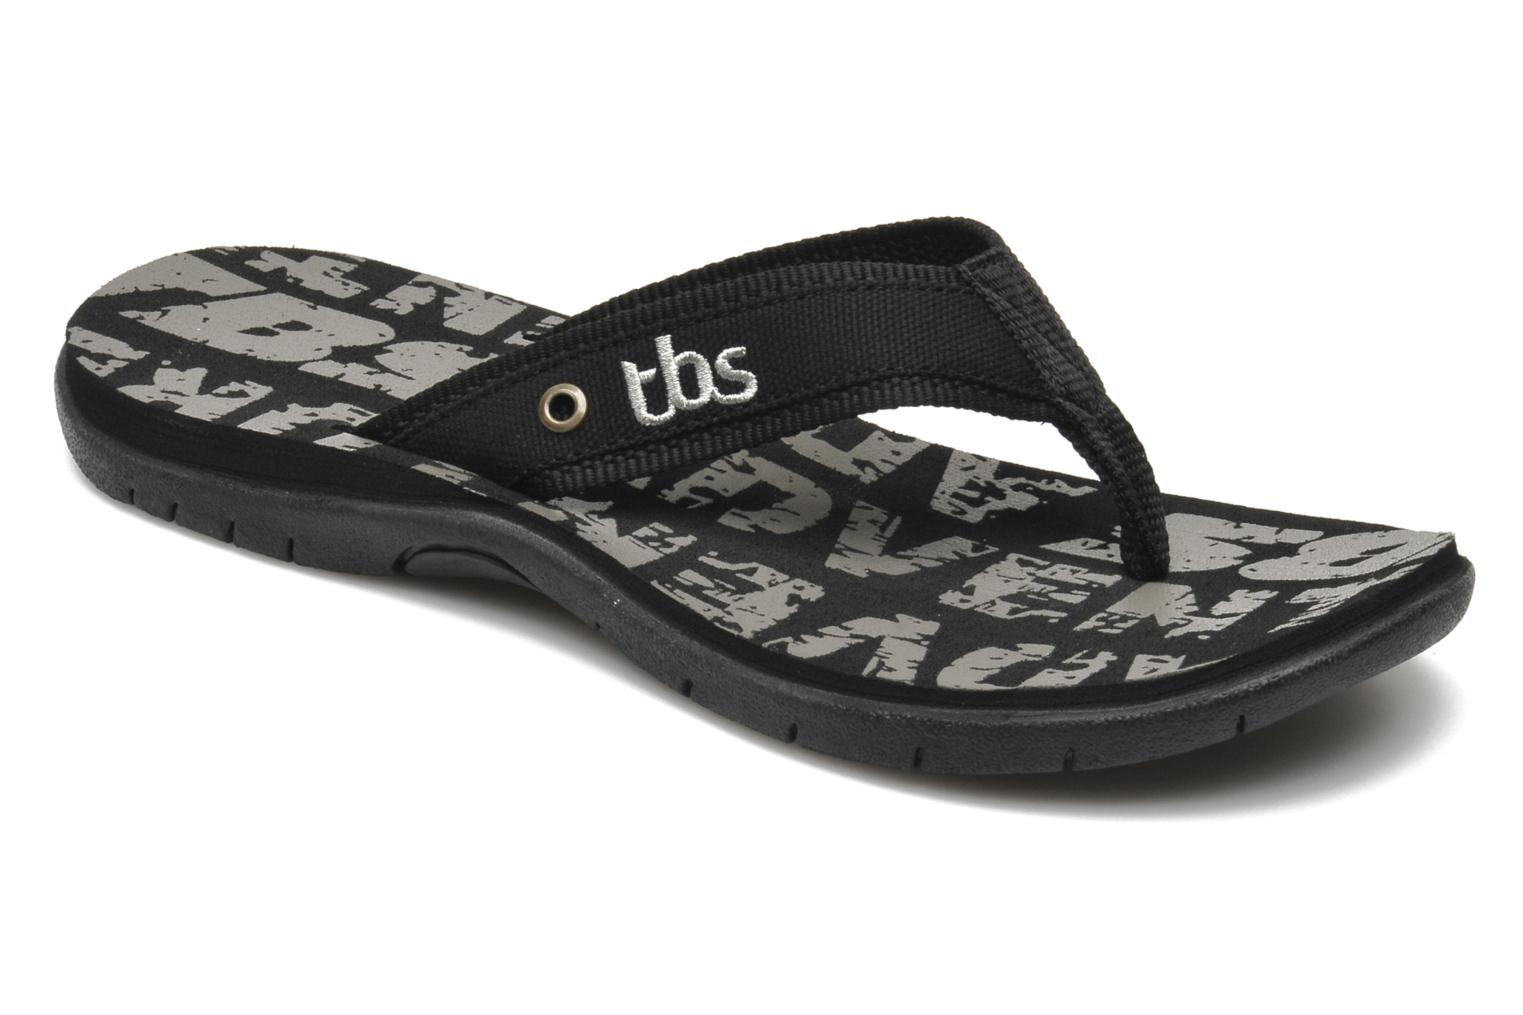 Slippers Pampas by TBS